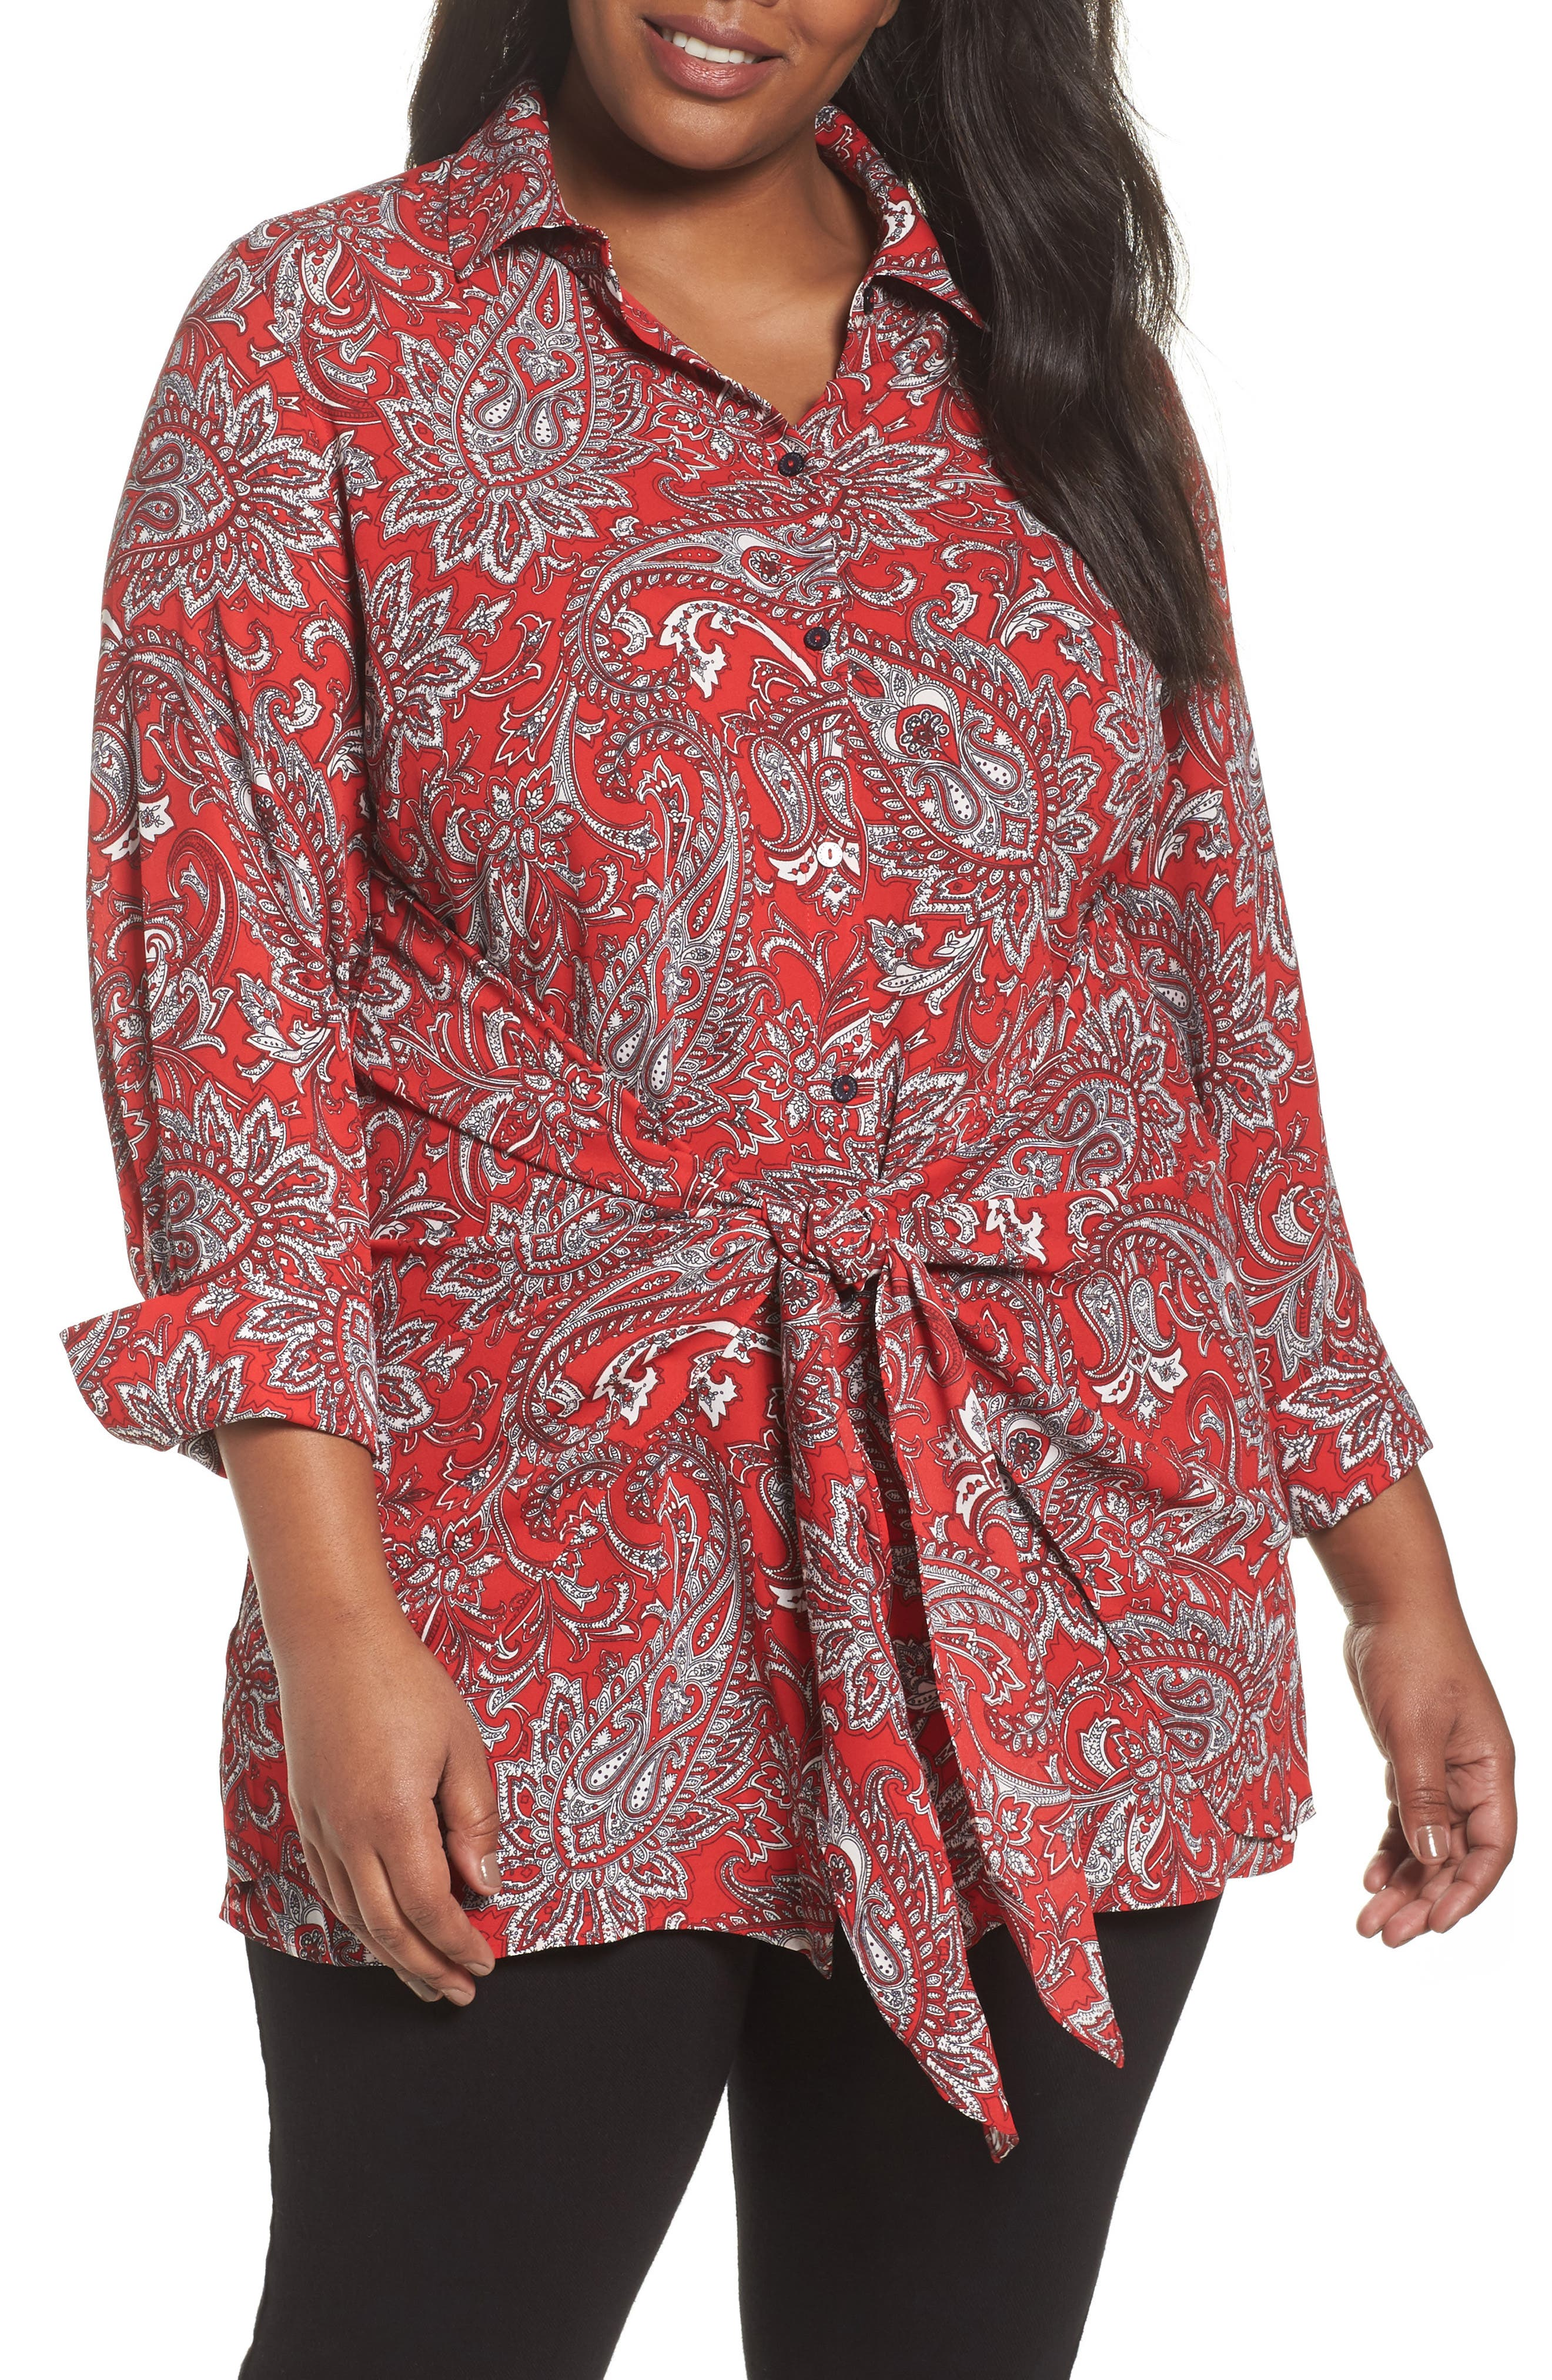 Serena Romantic Paisley Knotted Crepe Tunic Blouse,                             Main thumbnail 1, color,                             Red Multi